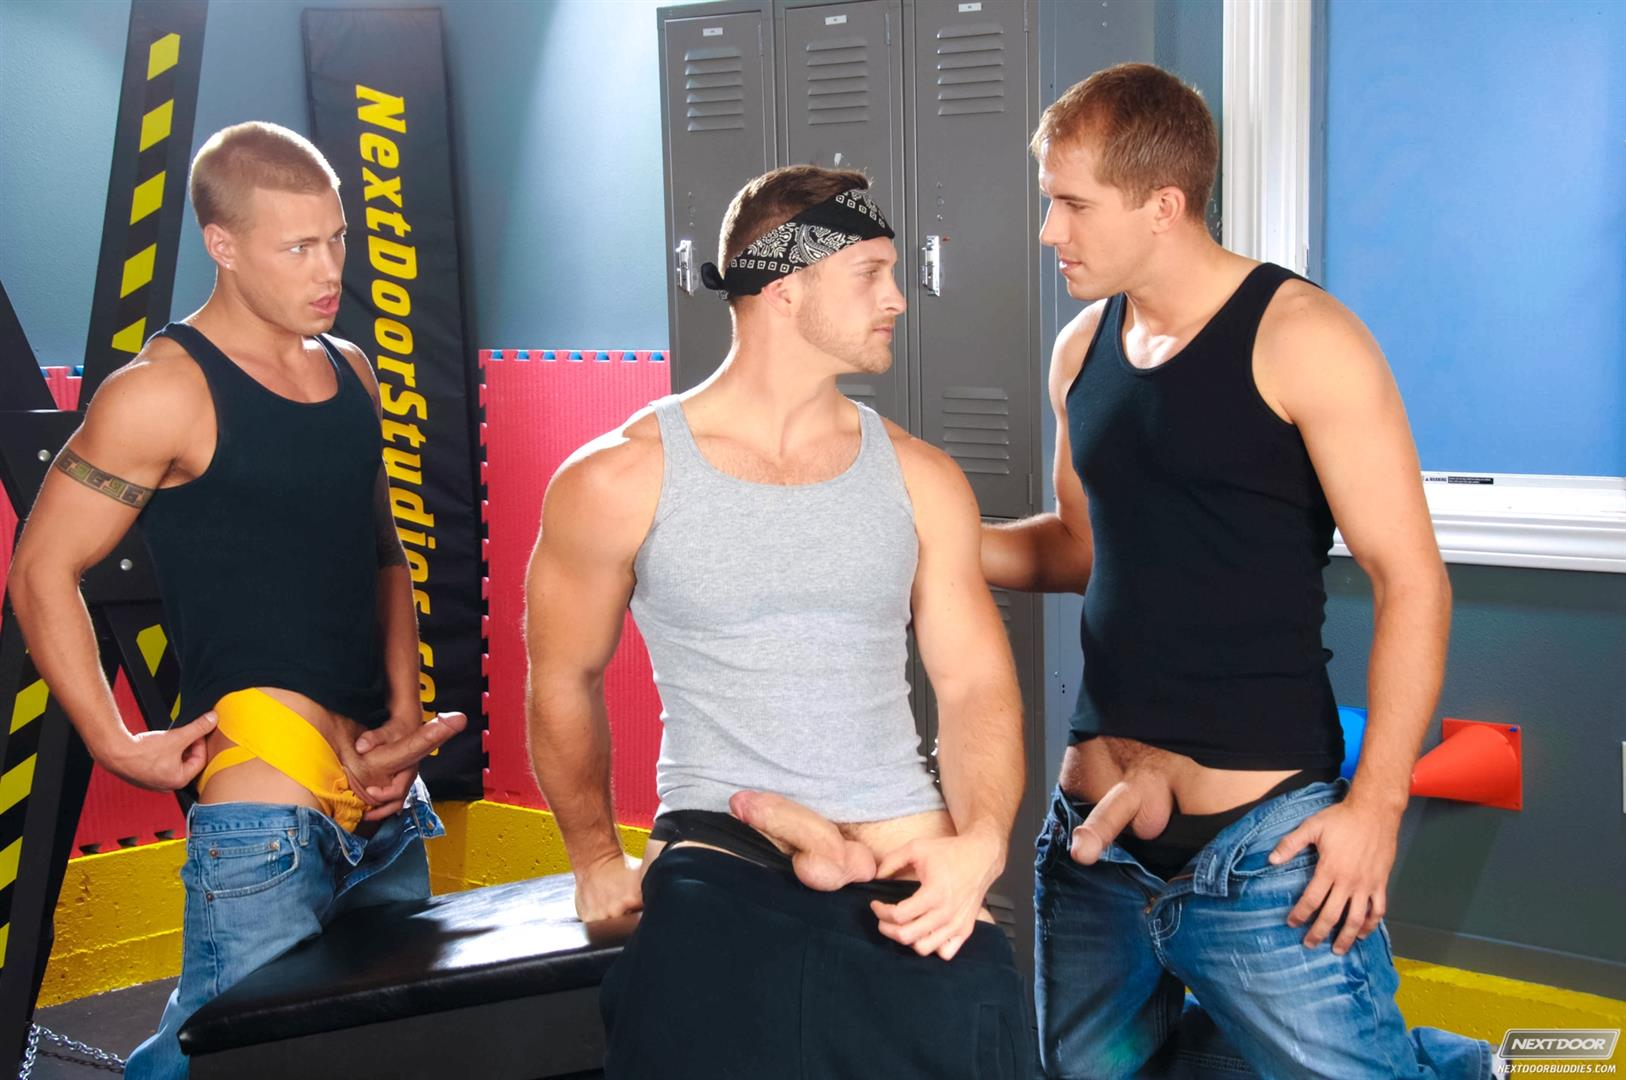 Next Door Buddies Brandon Lewis Paul Wagner Brody Wilder Hung Jocks Fucking In The Locker Room Amateur Gay Porn 02 Muscle Jocks Tag Teaming A Hot Muscle Ass In The Gym Locker Room